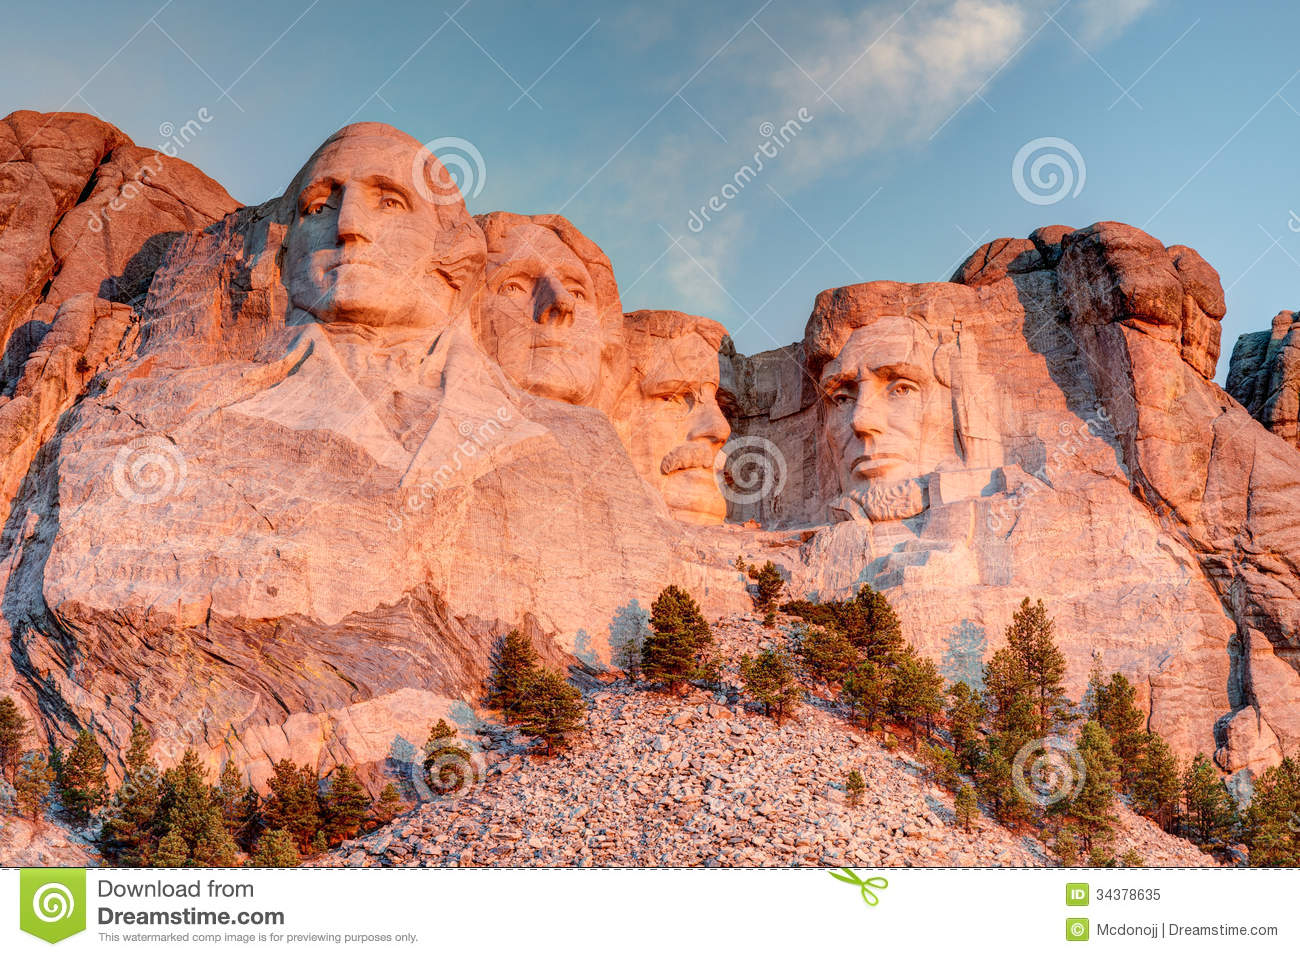 Mount Rushmore National Memorial Royalty Free Stock Photo.